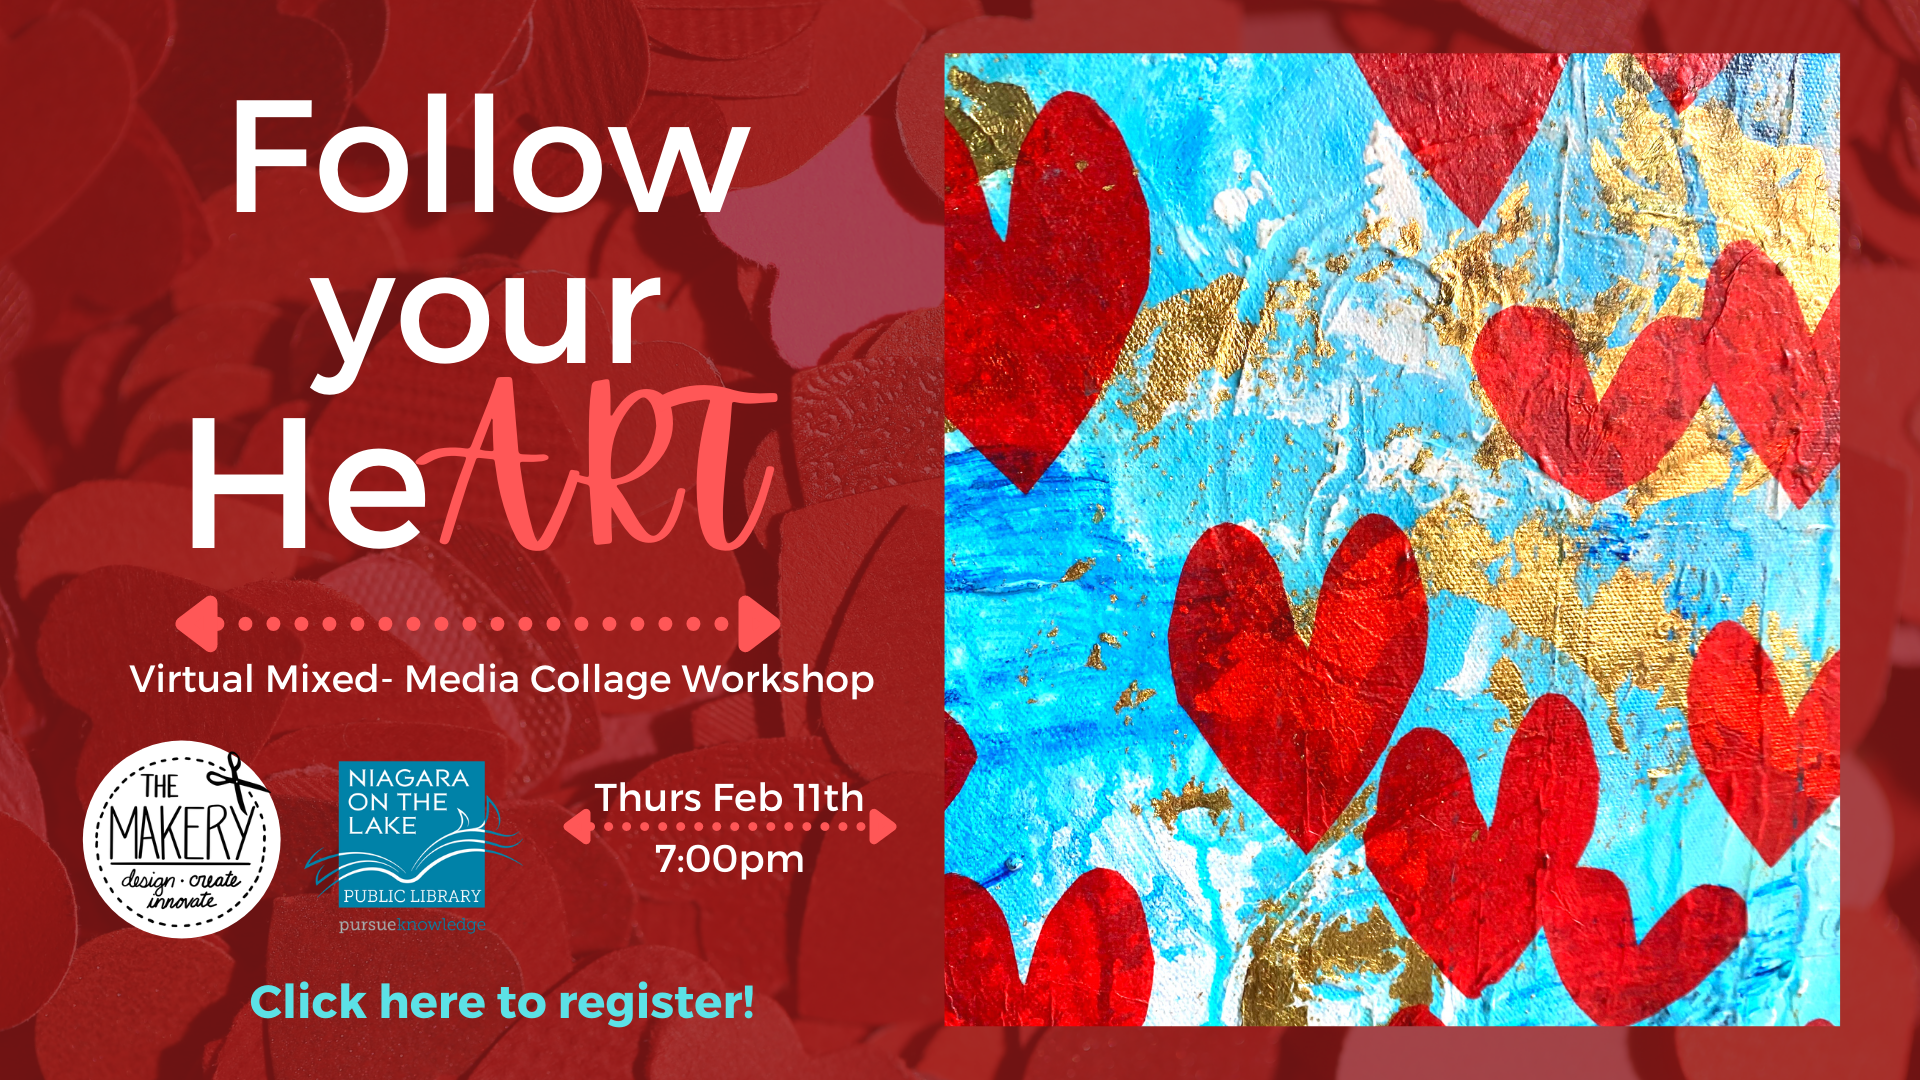 Follow your HeART Workshop